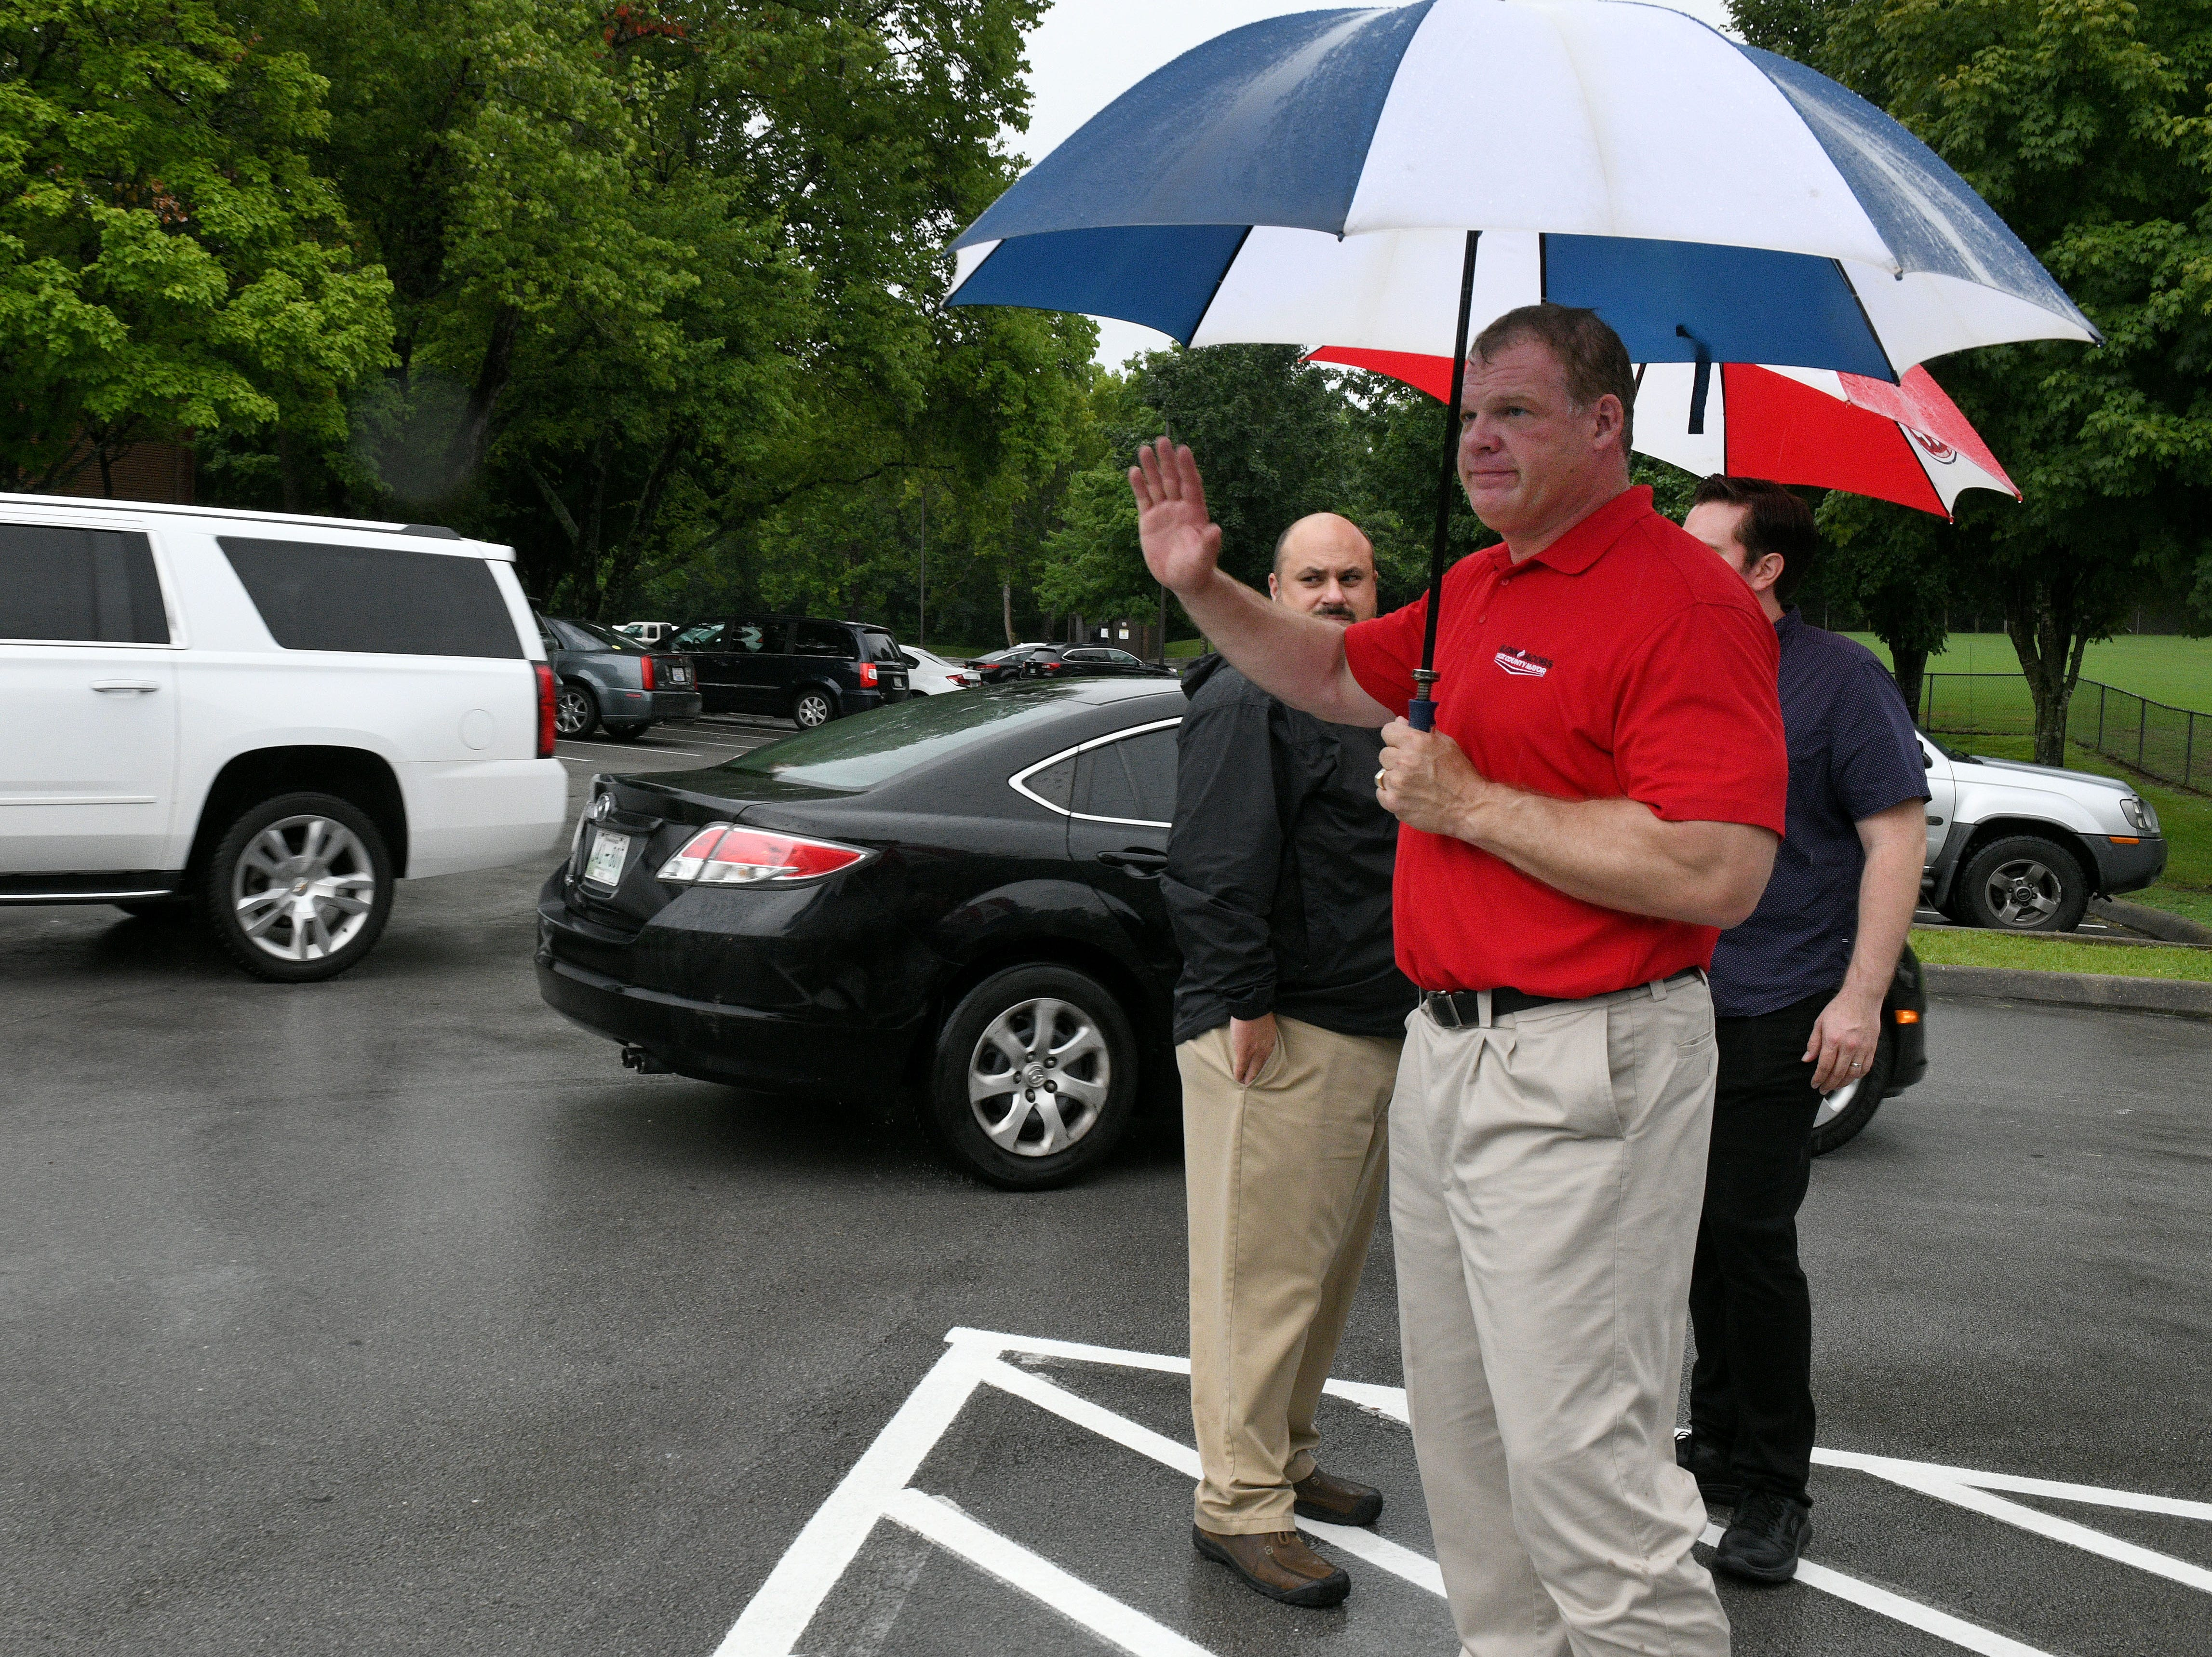 Glenn Jacobs campaigning in the rain to vote at Deane Hill Recreation Center on election day in Knox County Thursday, August 2, 2018.